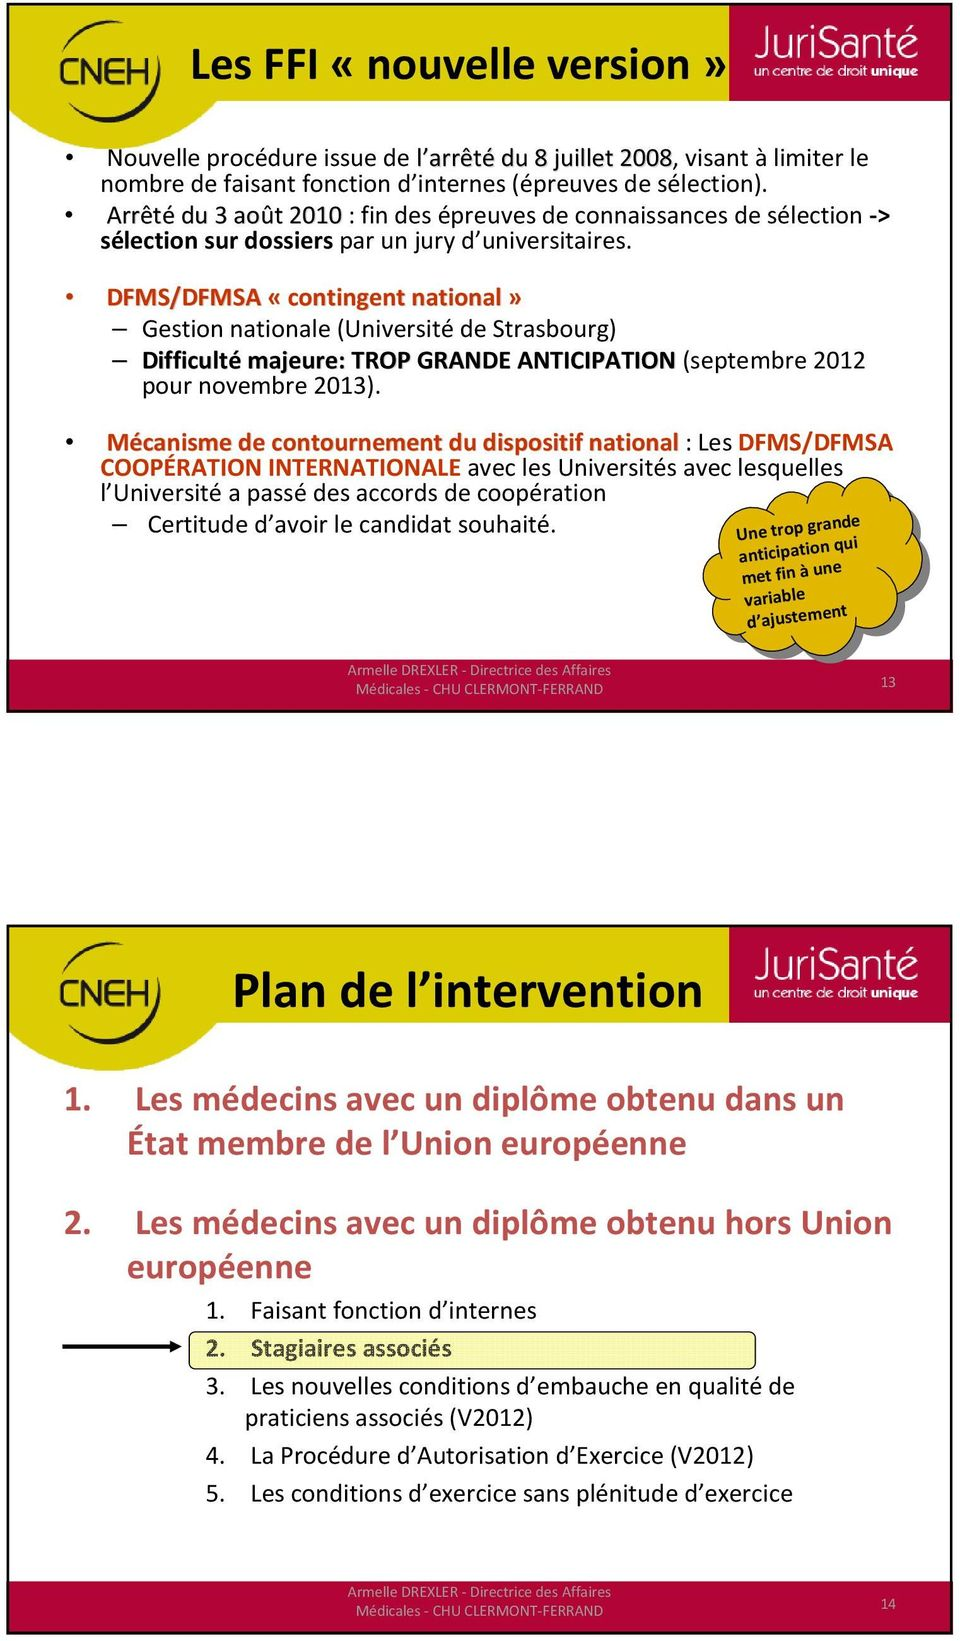 DFMS/DFMSA «contingent national» Gestion nationale (Université de Strasbourg) Difficulté majeure: TROP GRANDE ANTICIPATION(septembre 2012 pour novembre 2013).